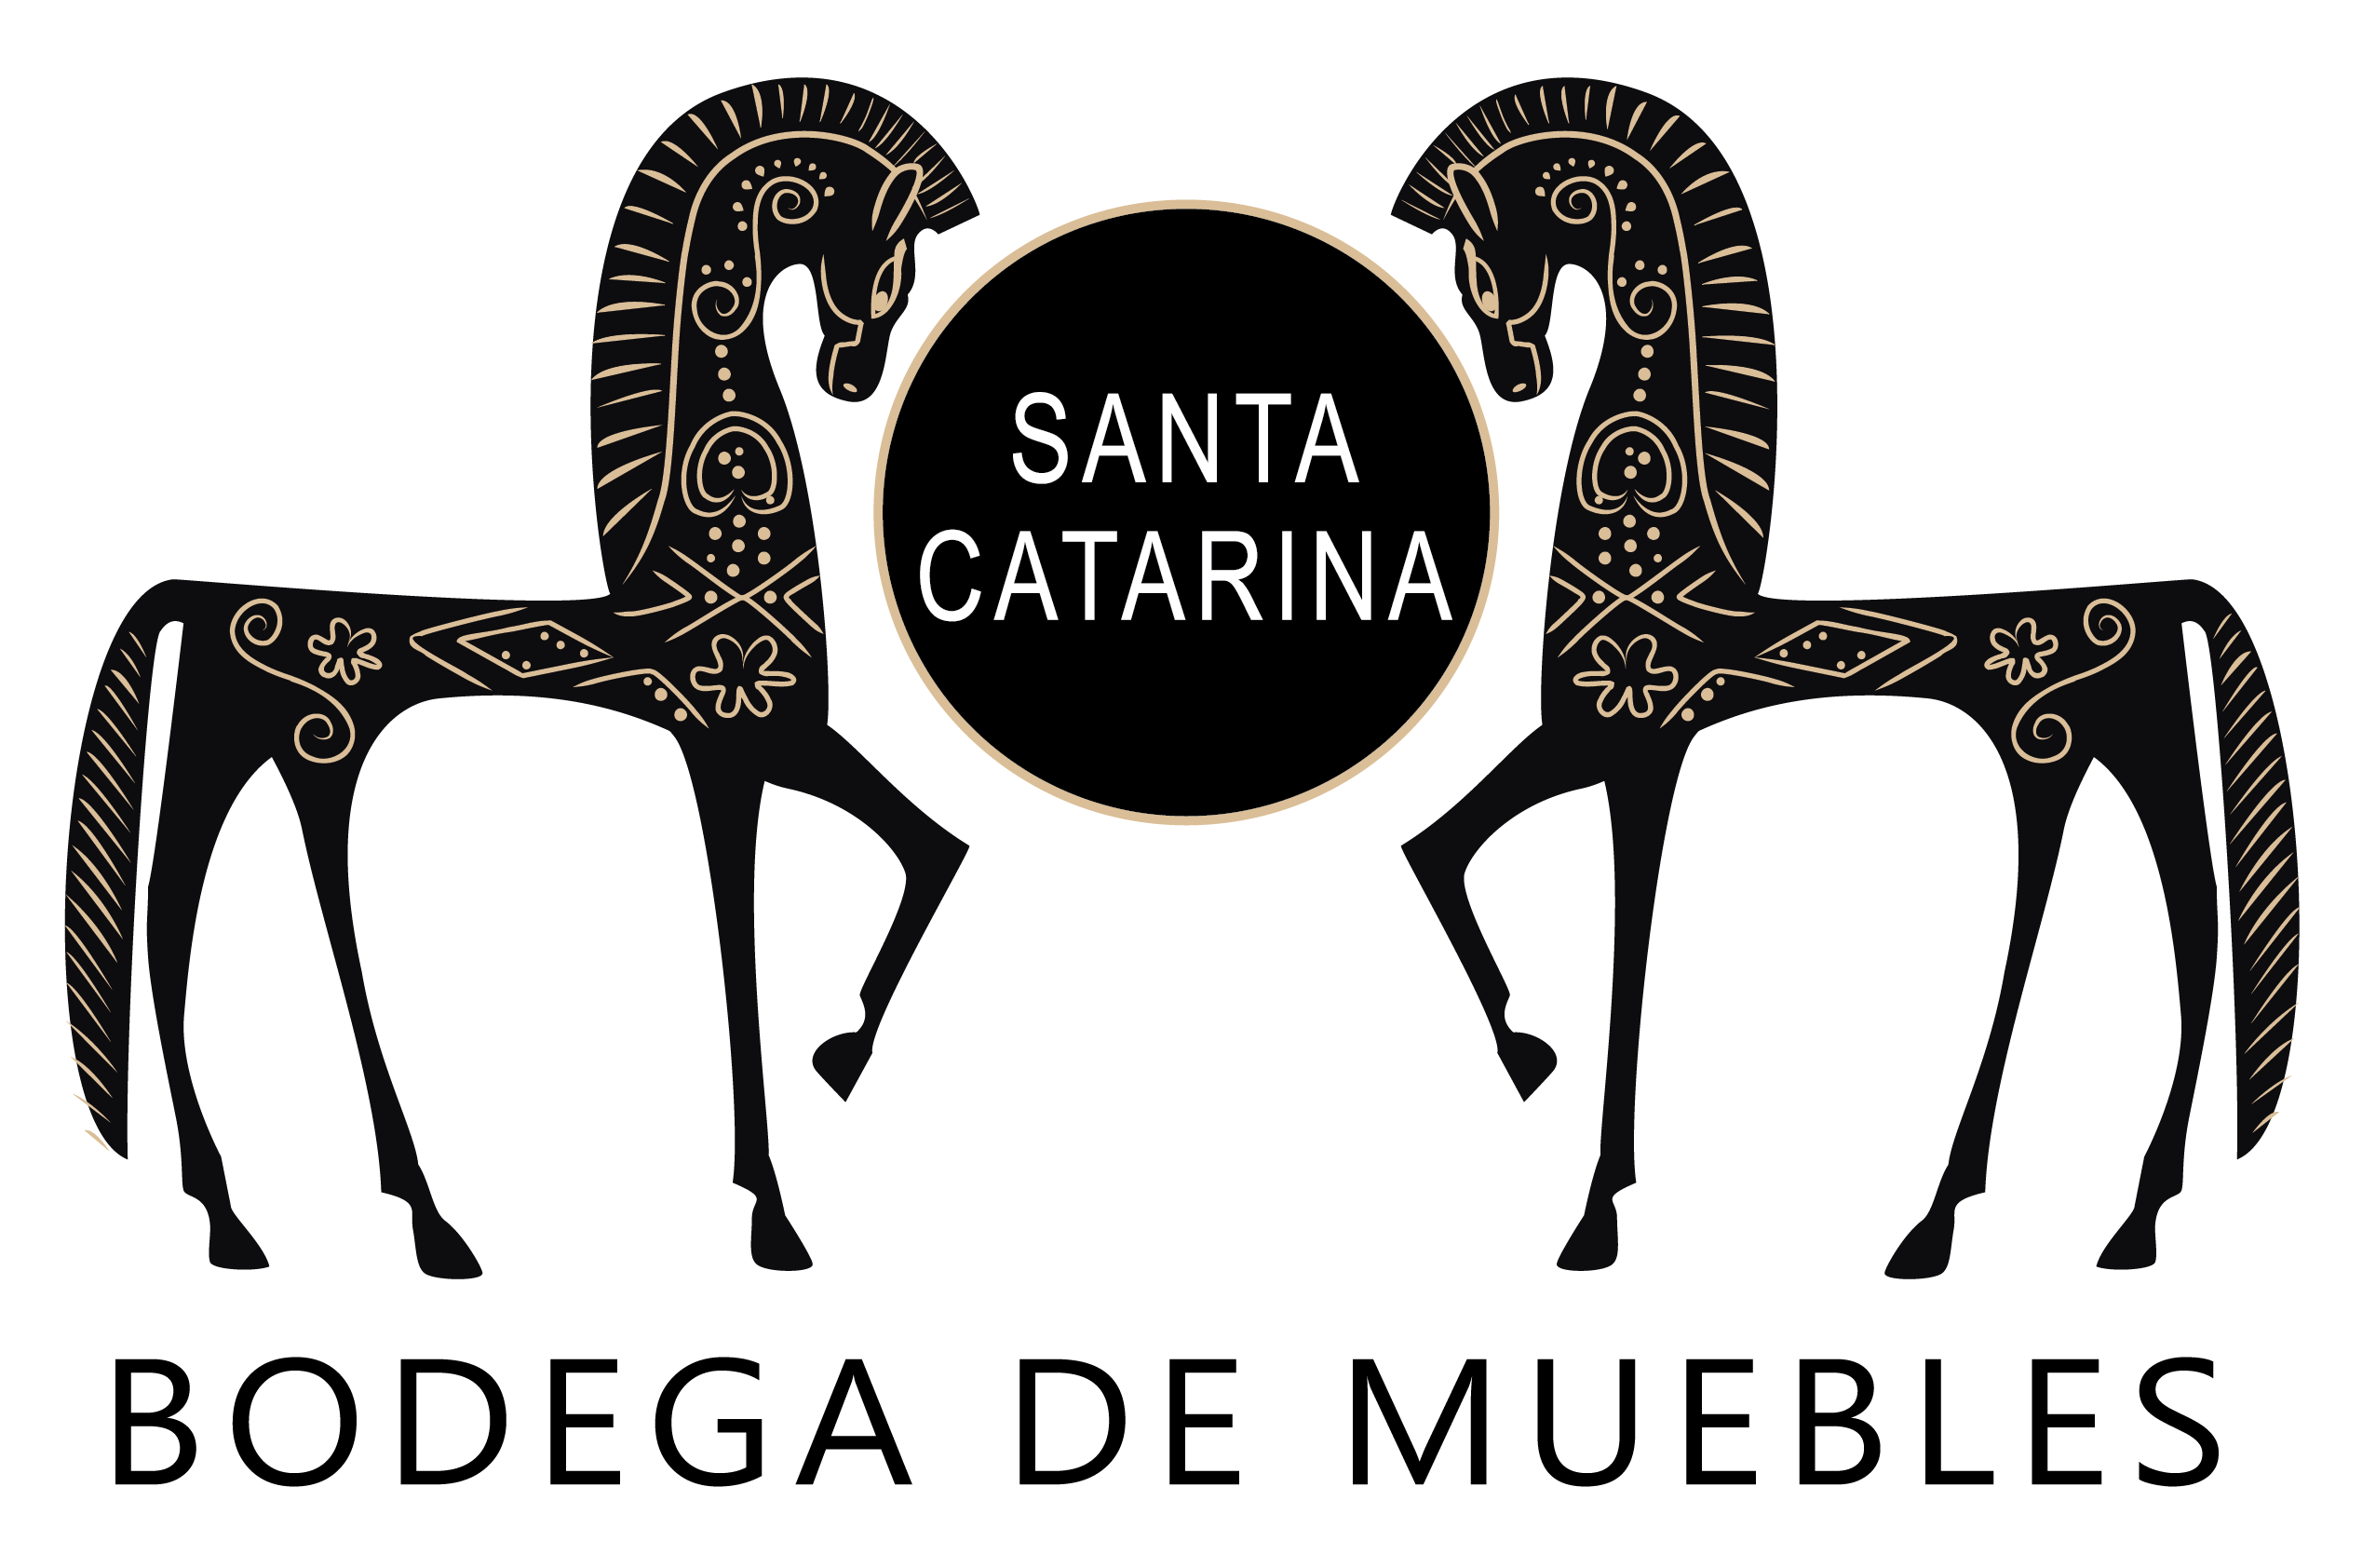 Bm Santa Catarina  # Muebles Favorita